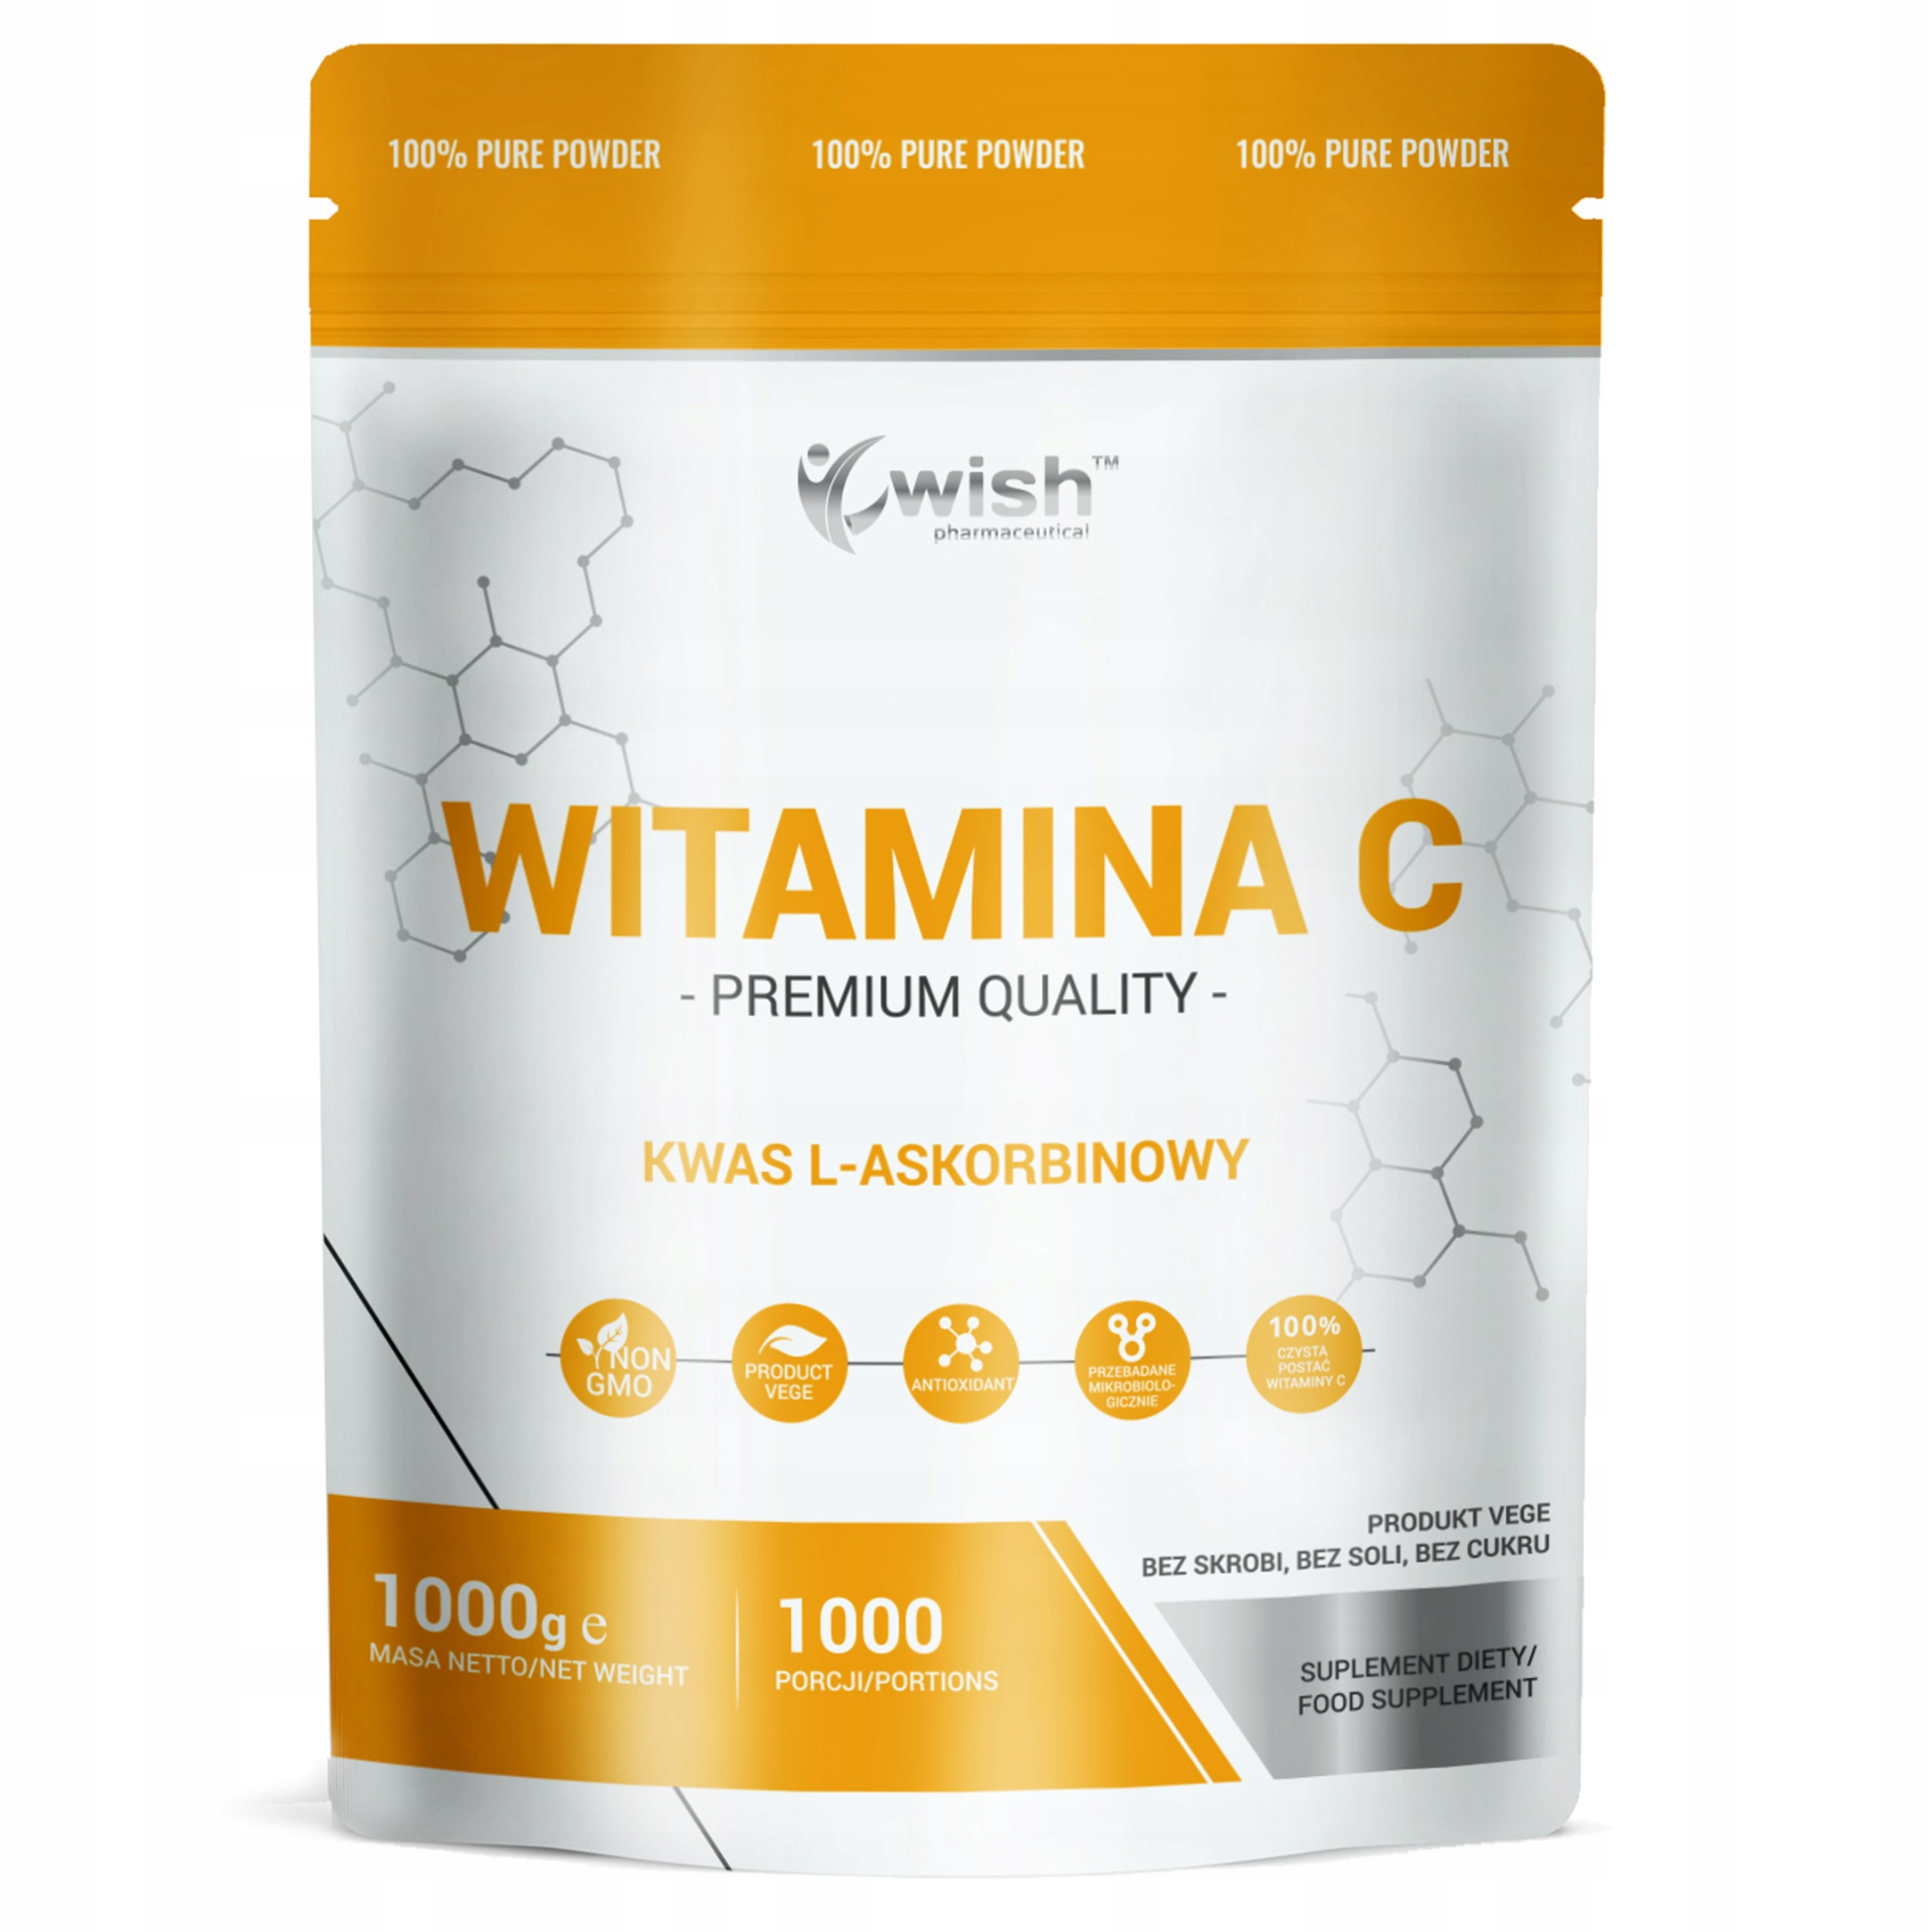 Item VITAMIN C POWDER is 100% L-ASCORBIC ACID 1kg